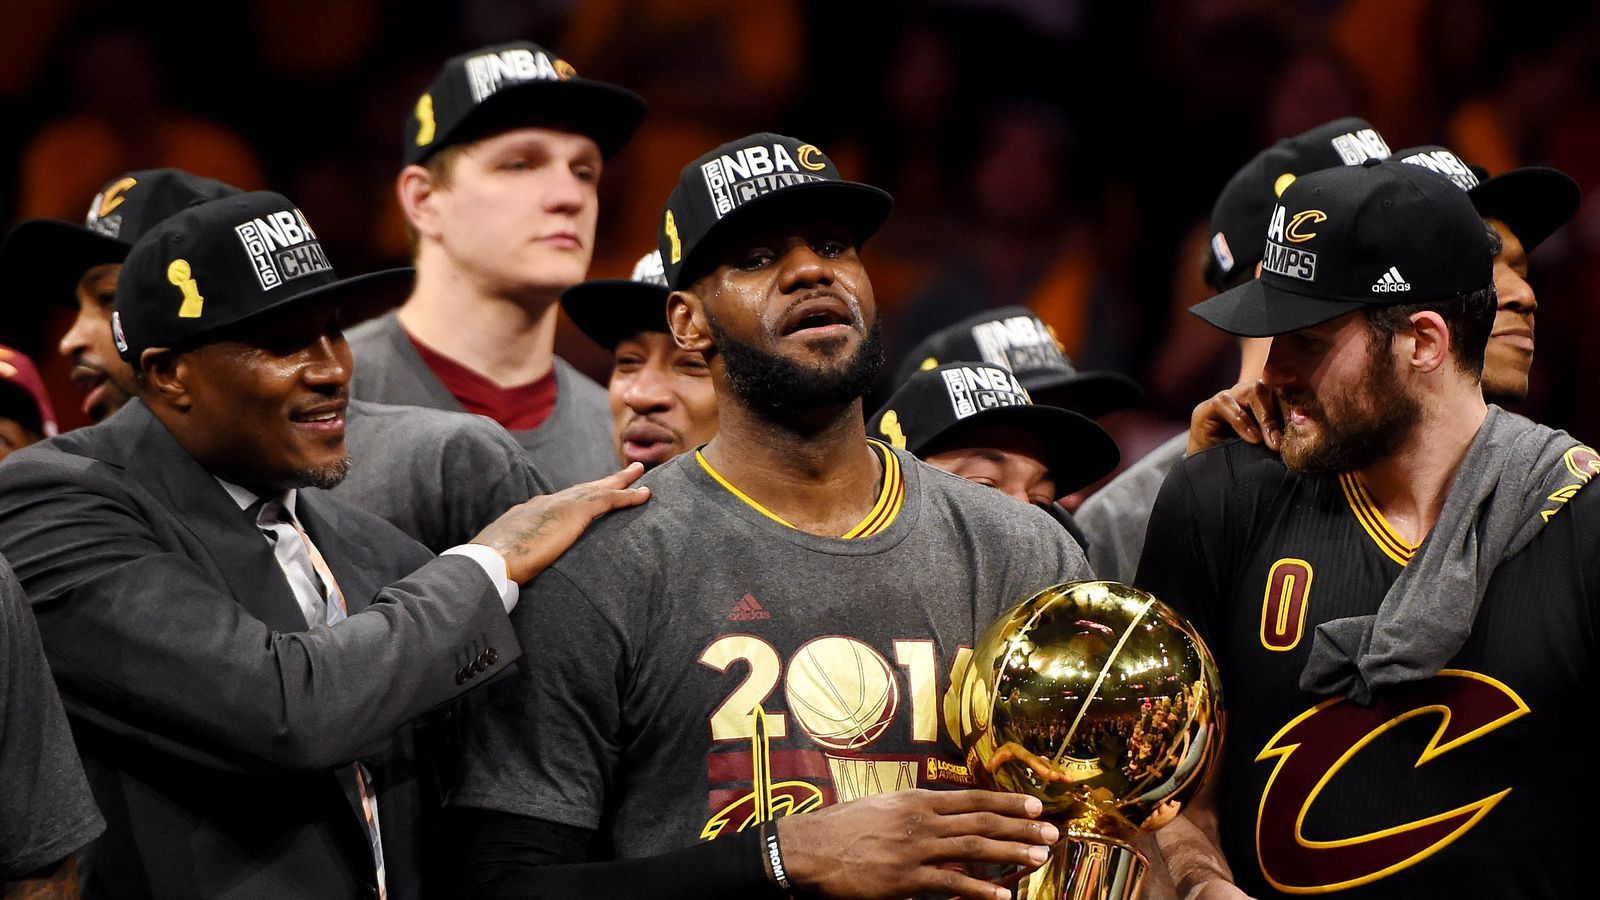 Cavaliers vs. Warriors 2016 final score: LeBron James brings a title back to Cleveland in thrilling Game 7 winCavaliers vs. Warriors 2016 final score: LeBron James brings a title back to Cleveland in thrilling Game 7 win - SBNation.comLeBron James brings NBA Championship to Cleveland - 웹